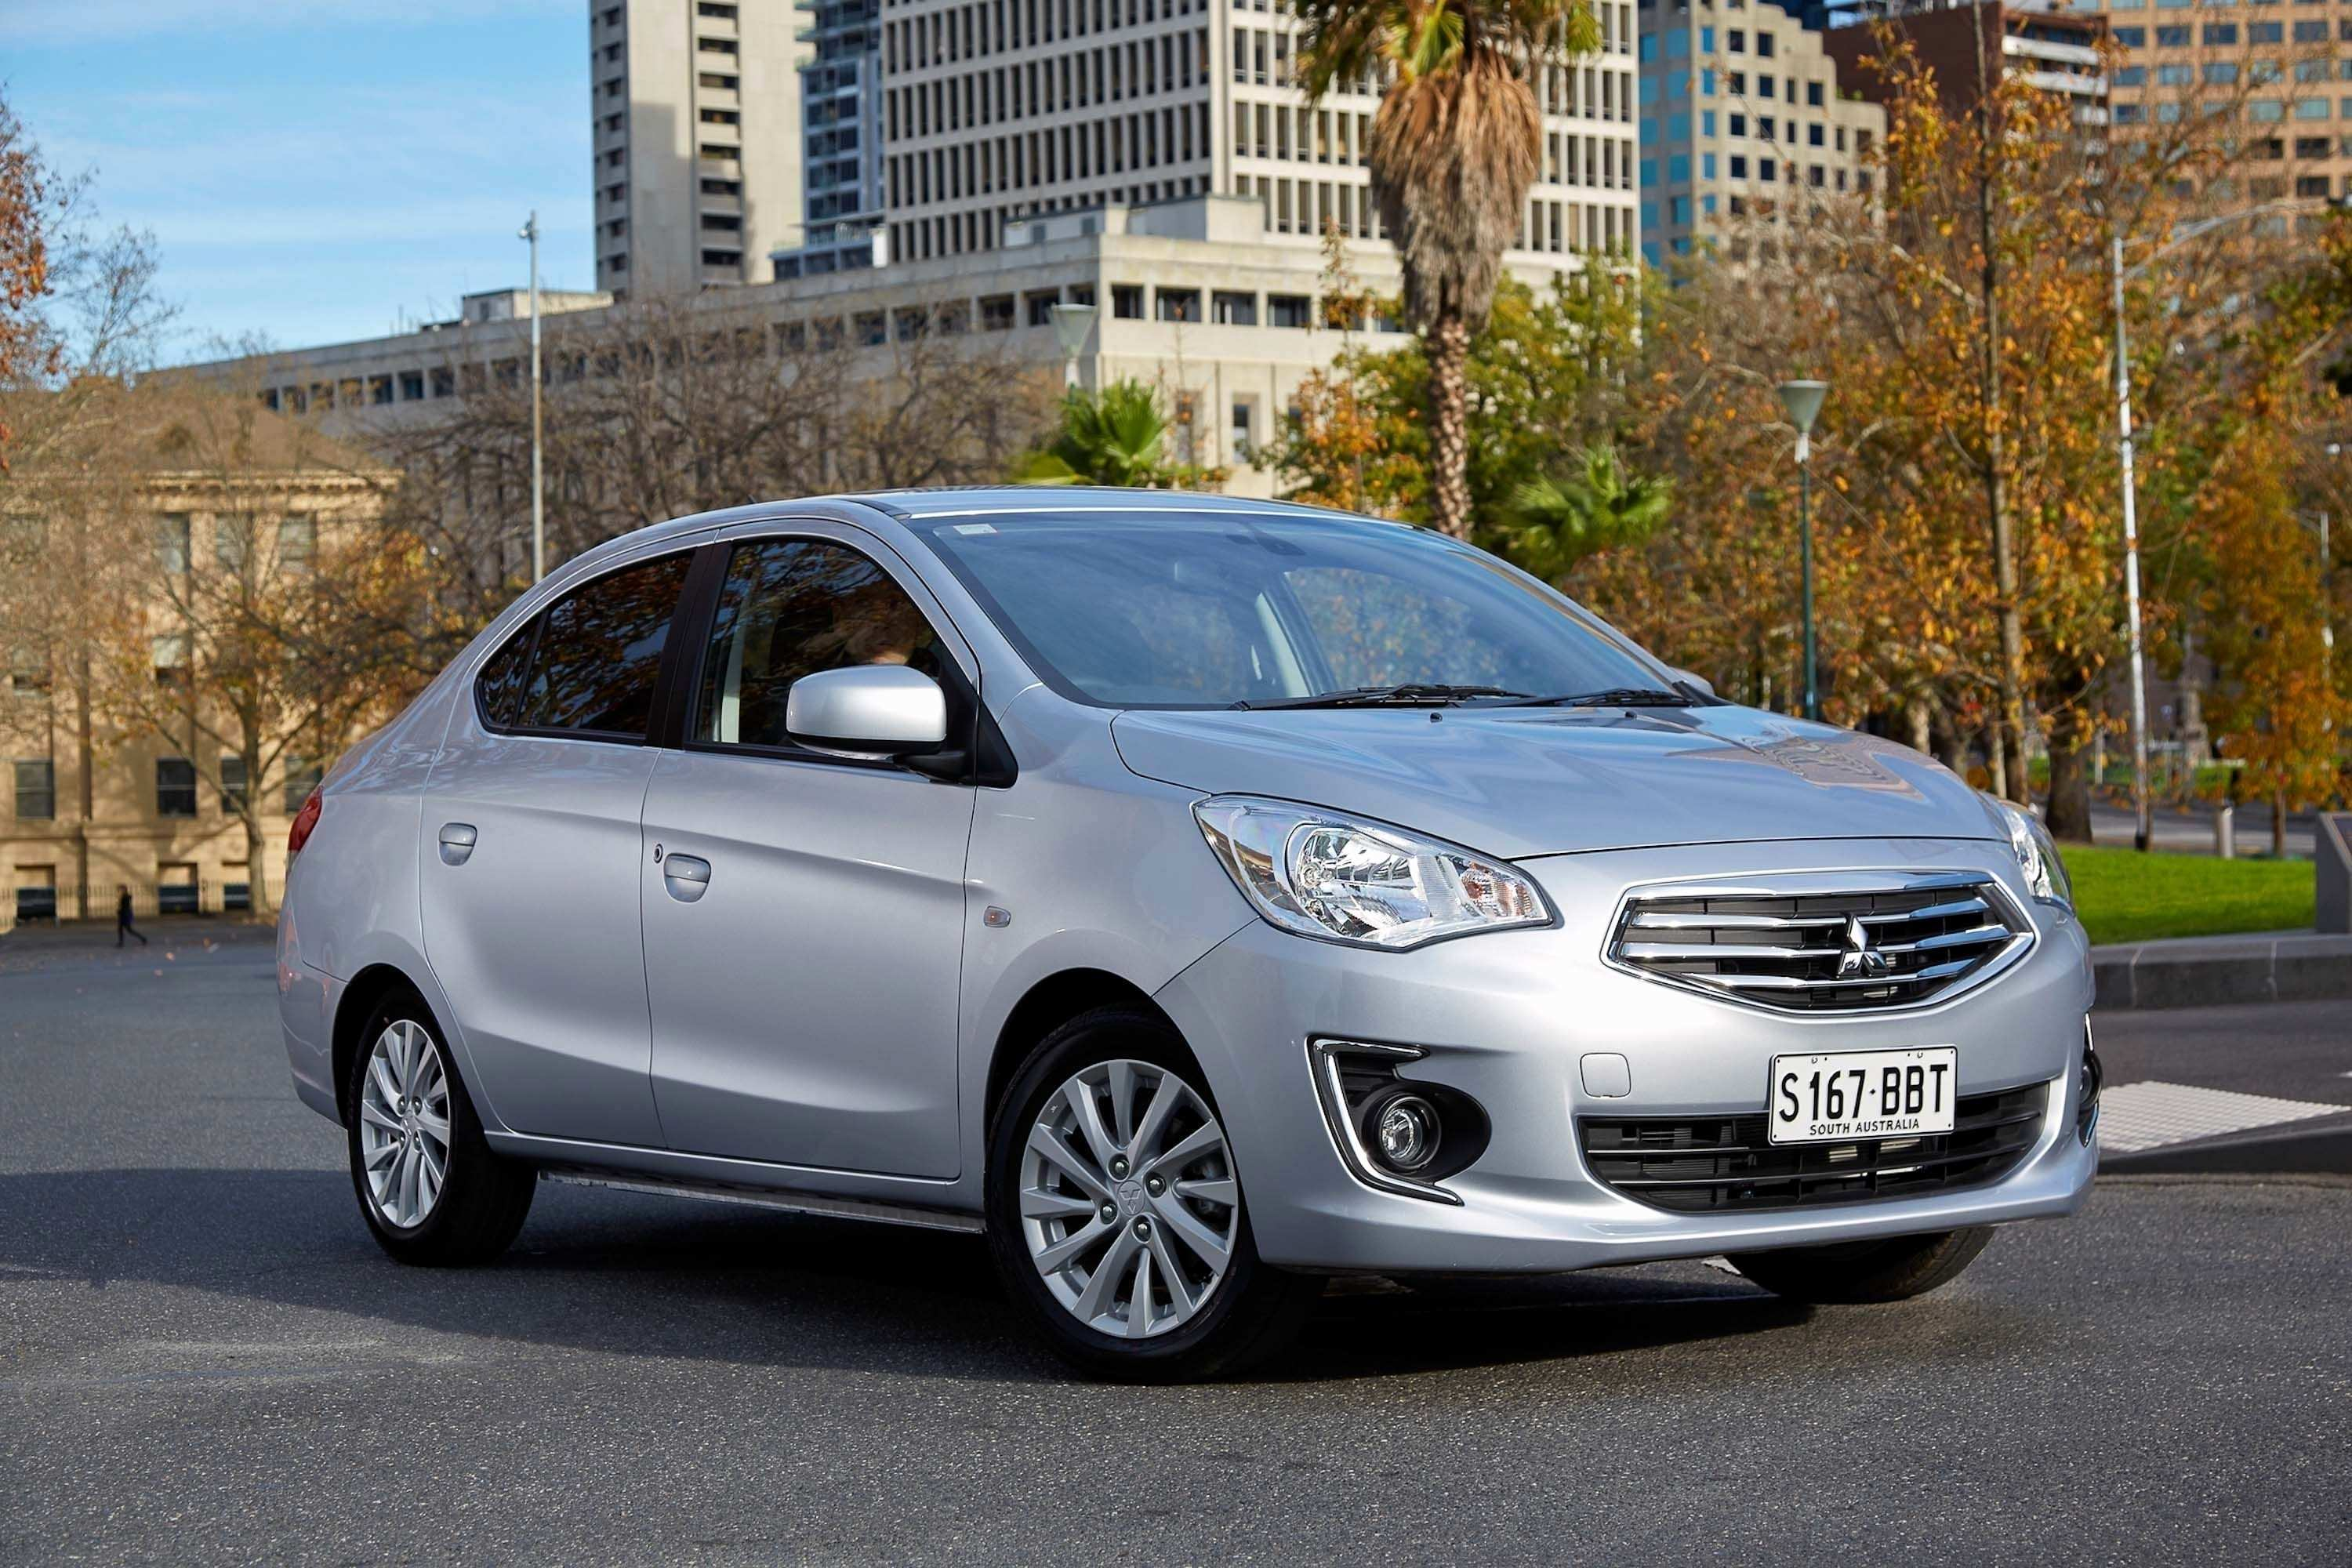 70 All New 2019 Mitsubishi Mirage Review Exterior and Interior with 2019 Mitsubishi Mirage Review